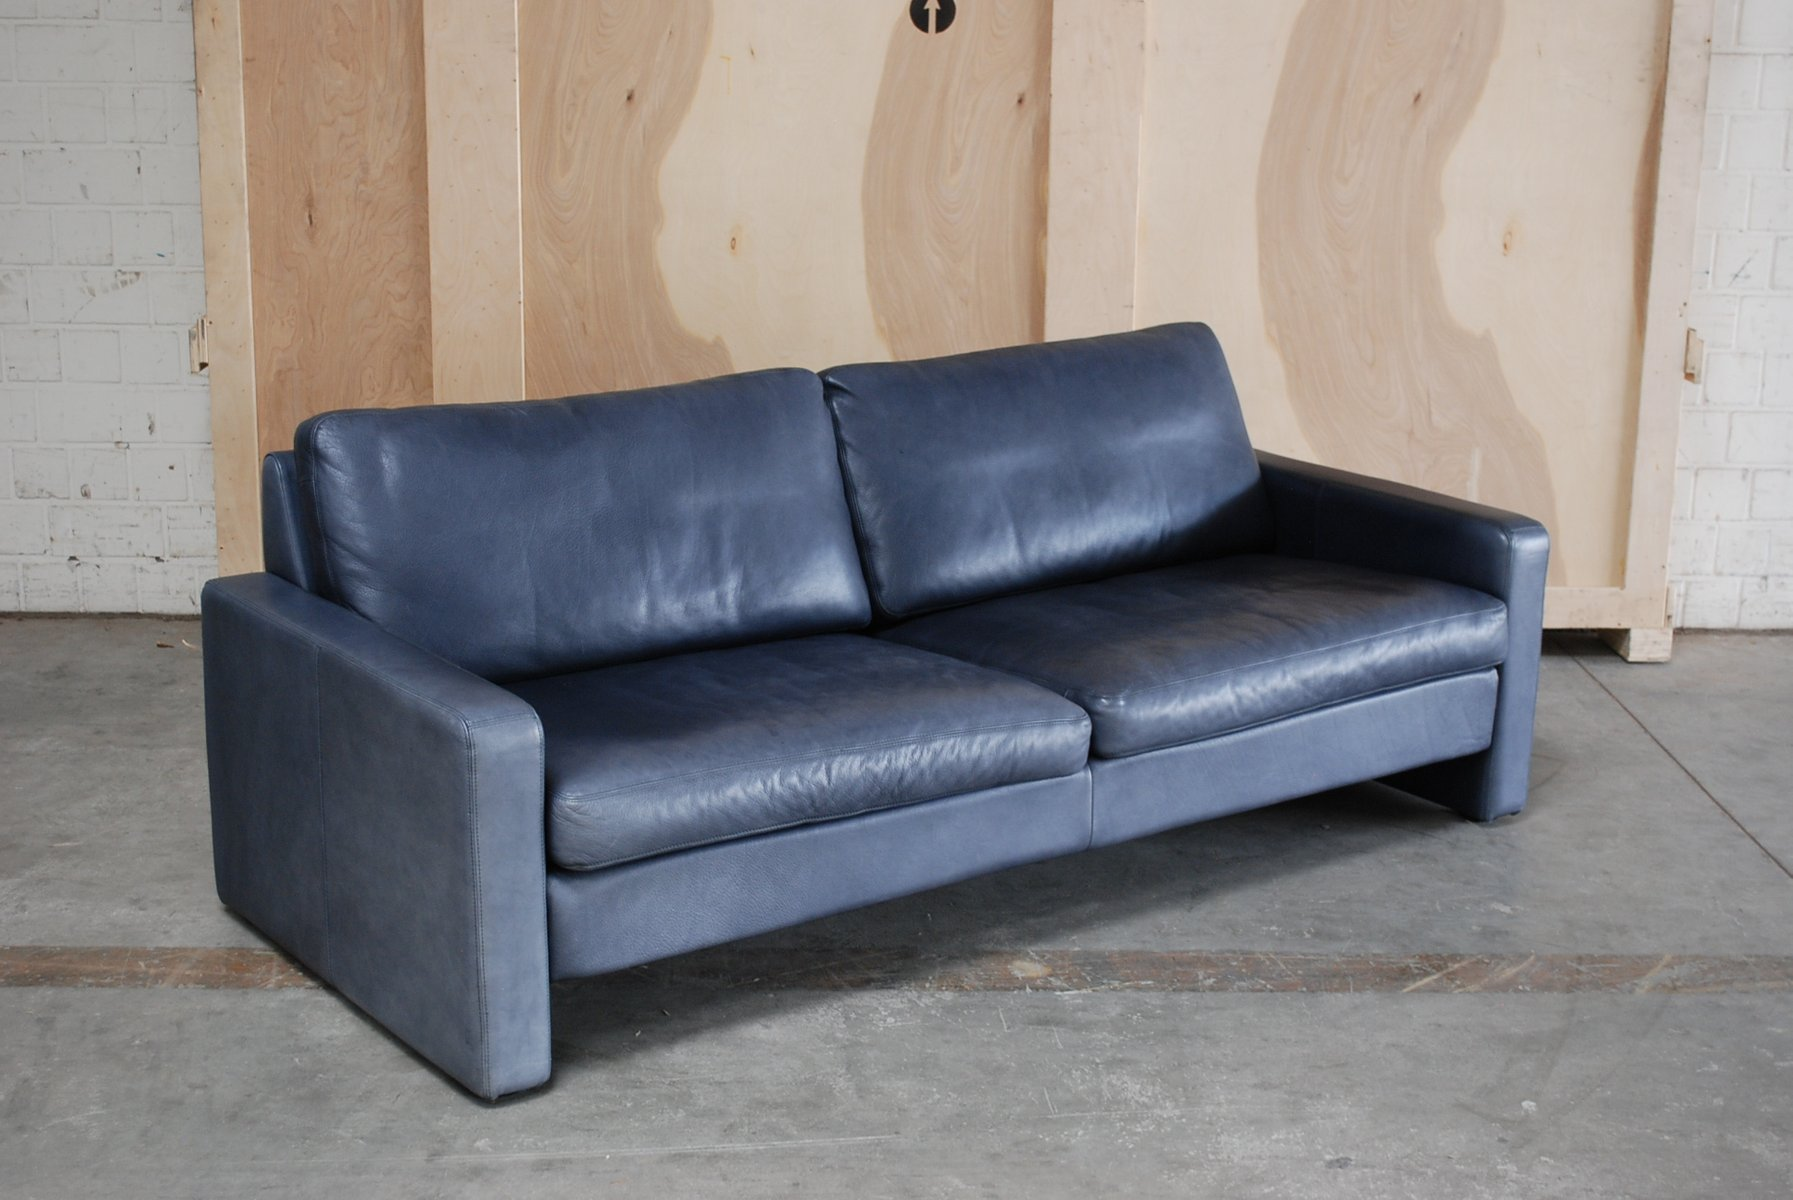 vintage conseta sofa aus blauem leder von cor bei pamono. Black Bedroom Furniture Sets. Home Design Ideas